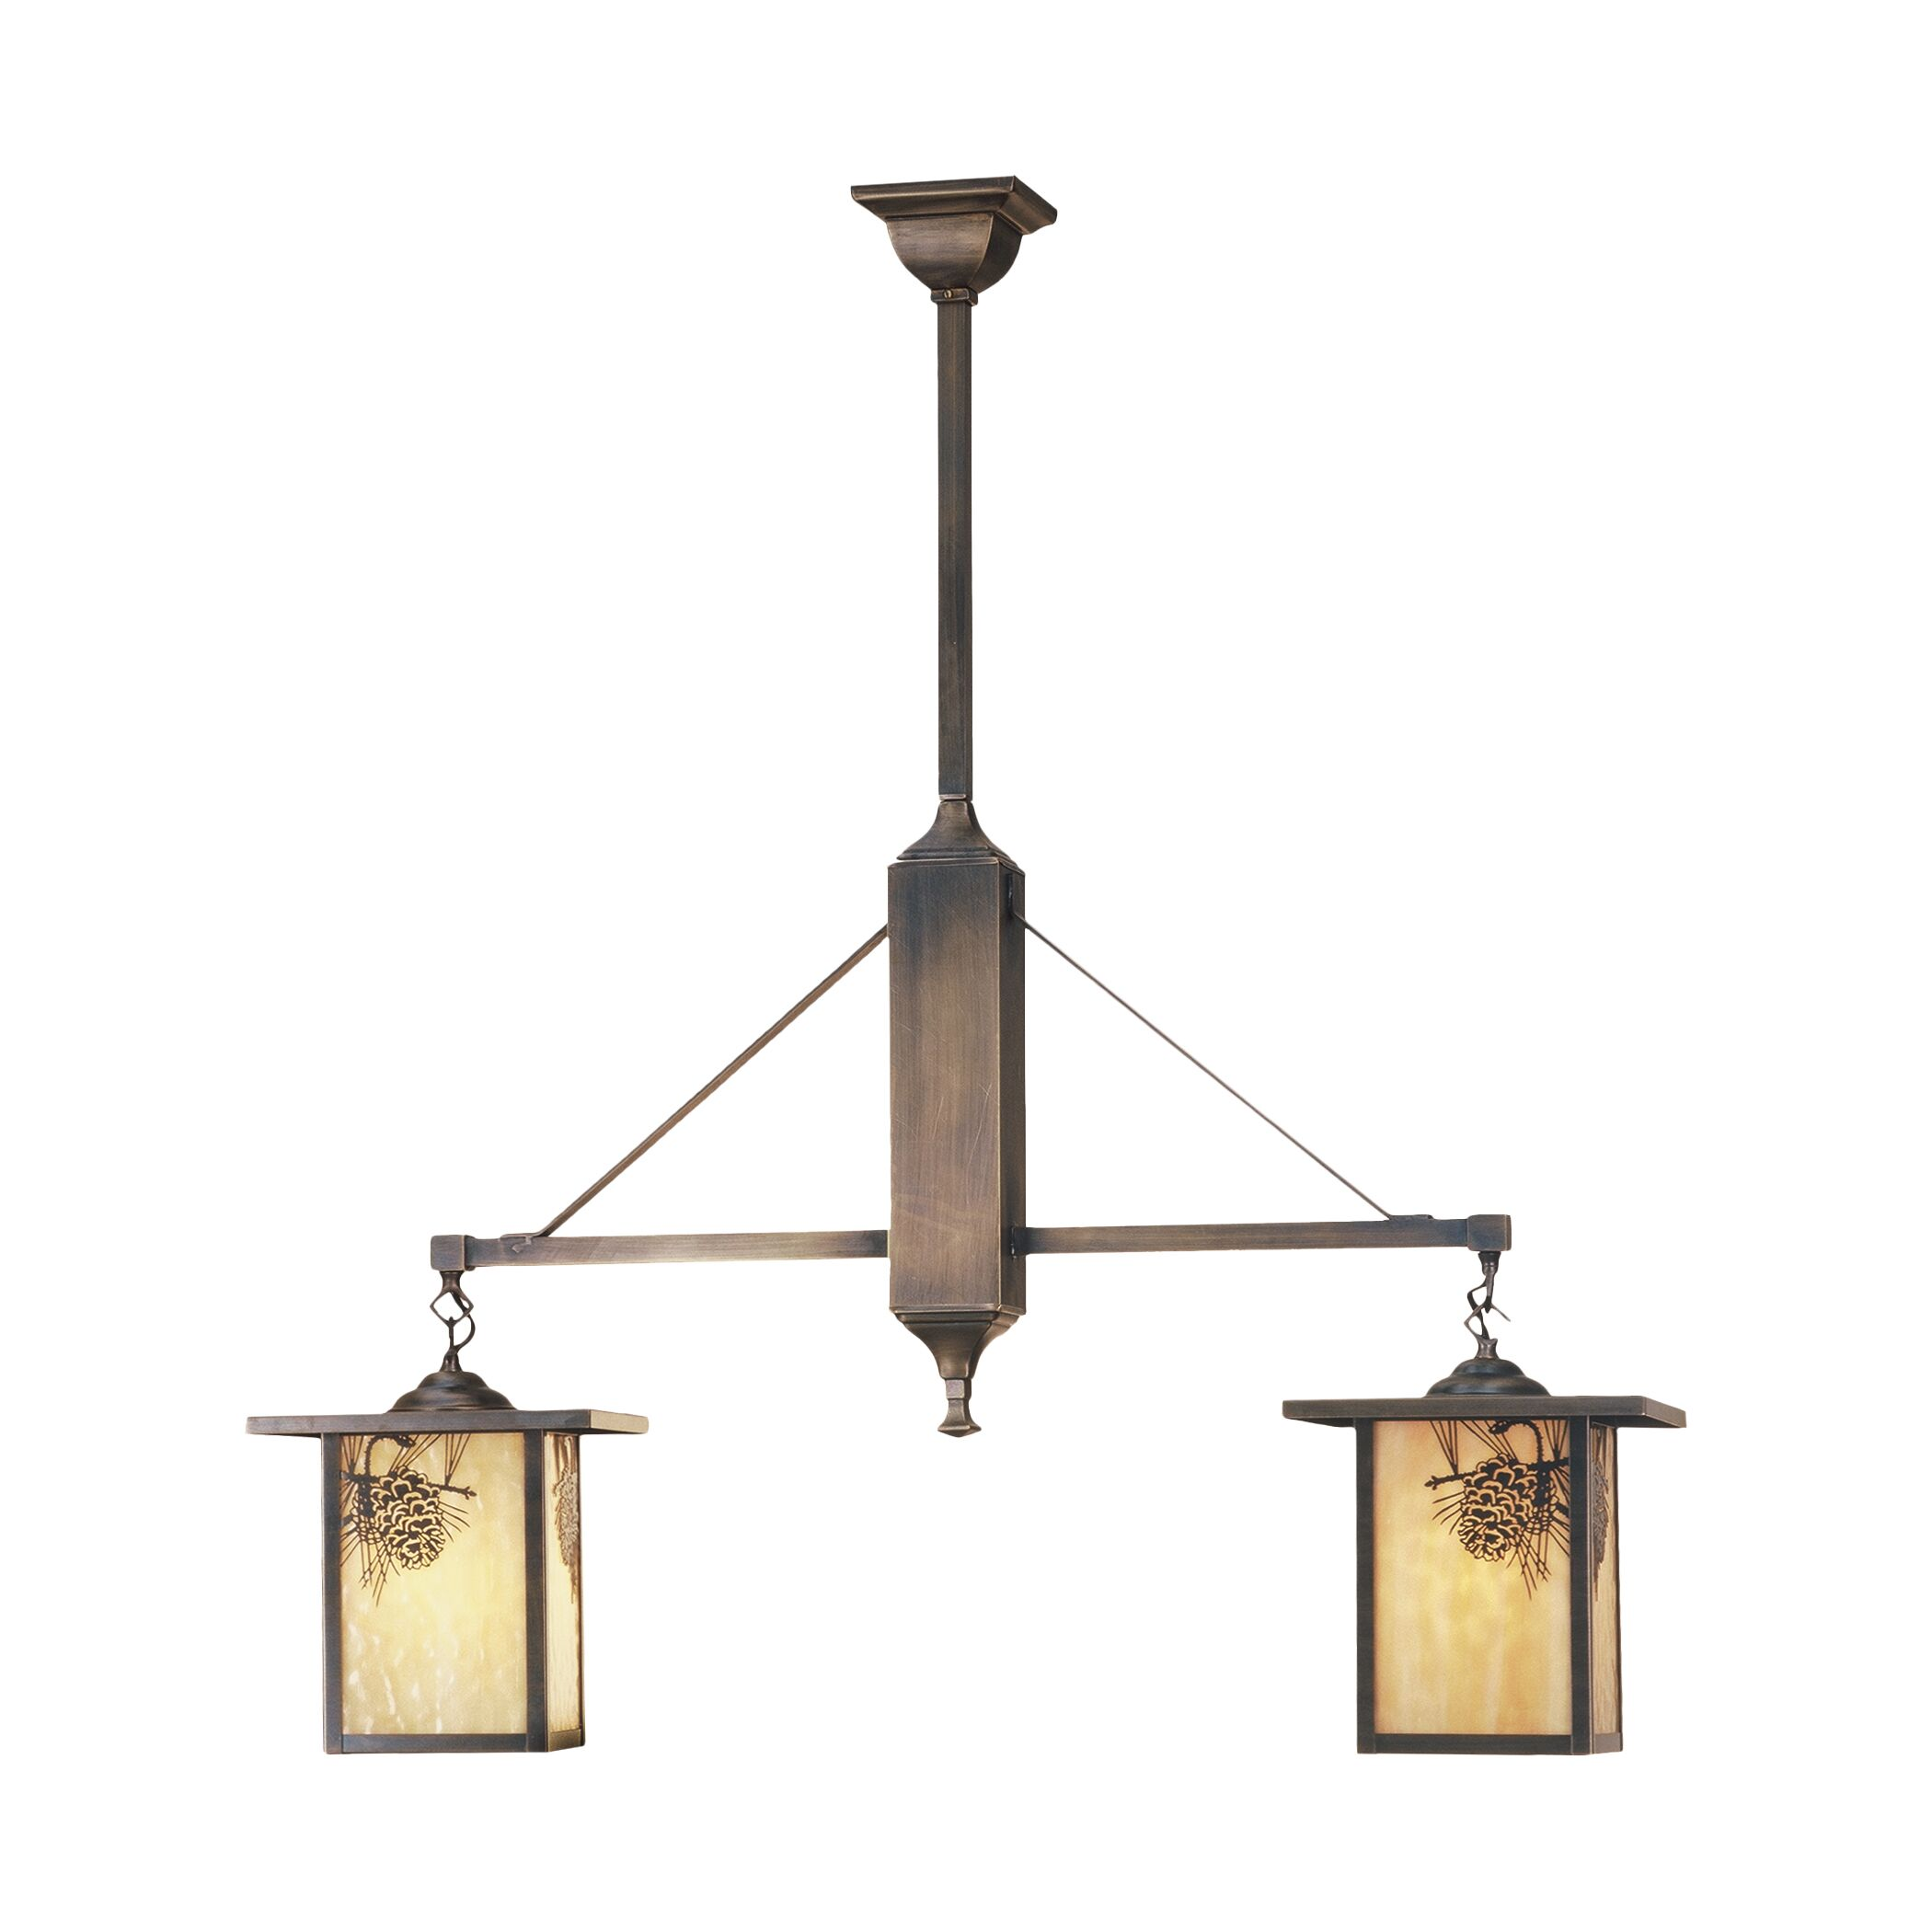 Pine cone laden branches accent this handsome American craftsman lantern style two light chandelier. The fixture, handcrafted in the USA by Meyda artisans, has an antique finish and has beige glass panels. Features: -Handcrafted.-UL and cUL listed.-Ma...